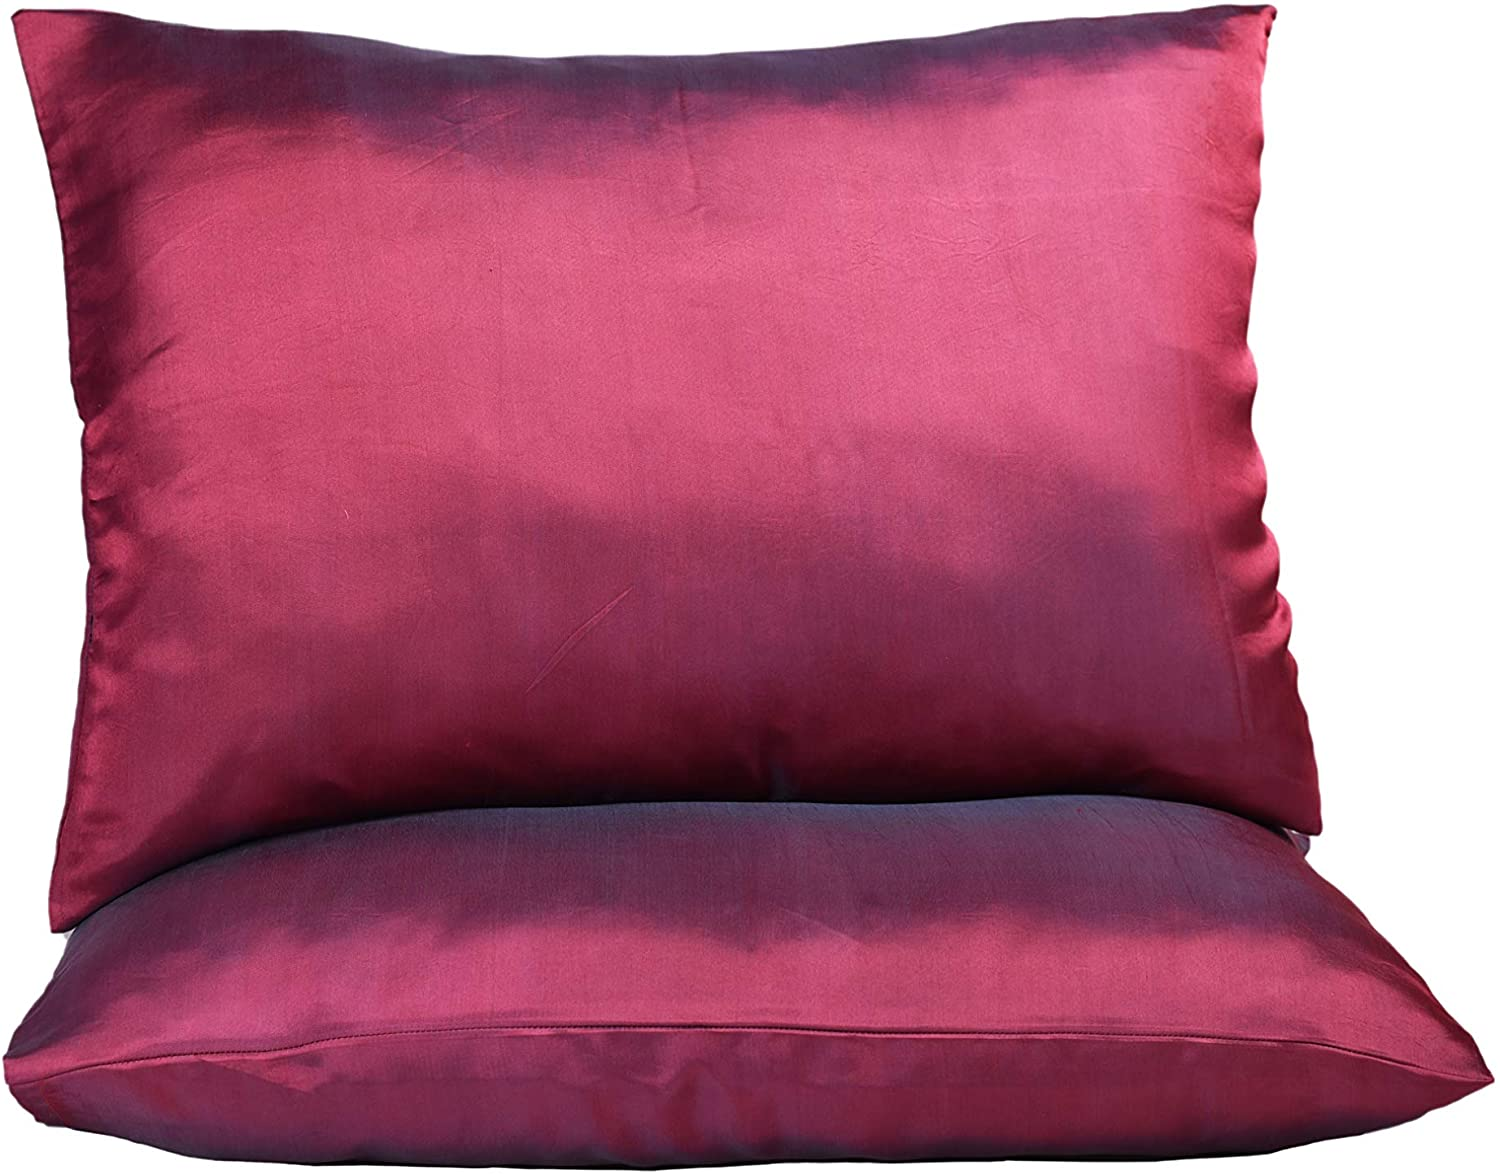 Hannah Silk 1 Pair Standard Pure Mulberry Silk Pillowcase.25 Momme. 100% Pure Mulberry. Cares for Your Hair and Complexion. Queen Size. Envelope Closure (Pack of 2) (Red Wine)